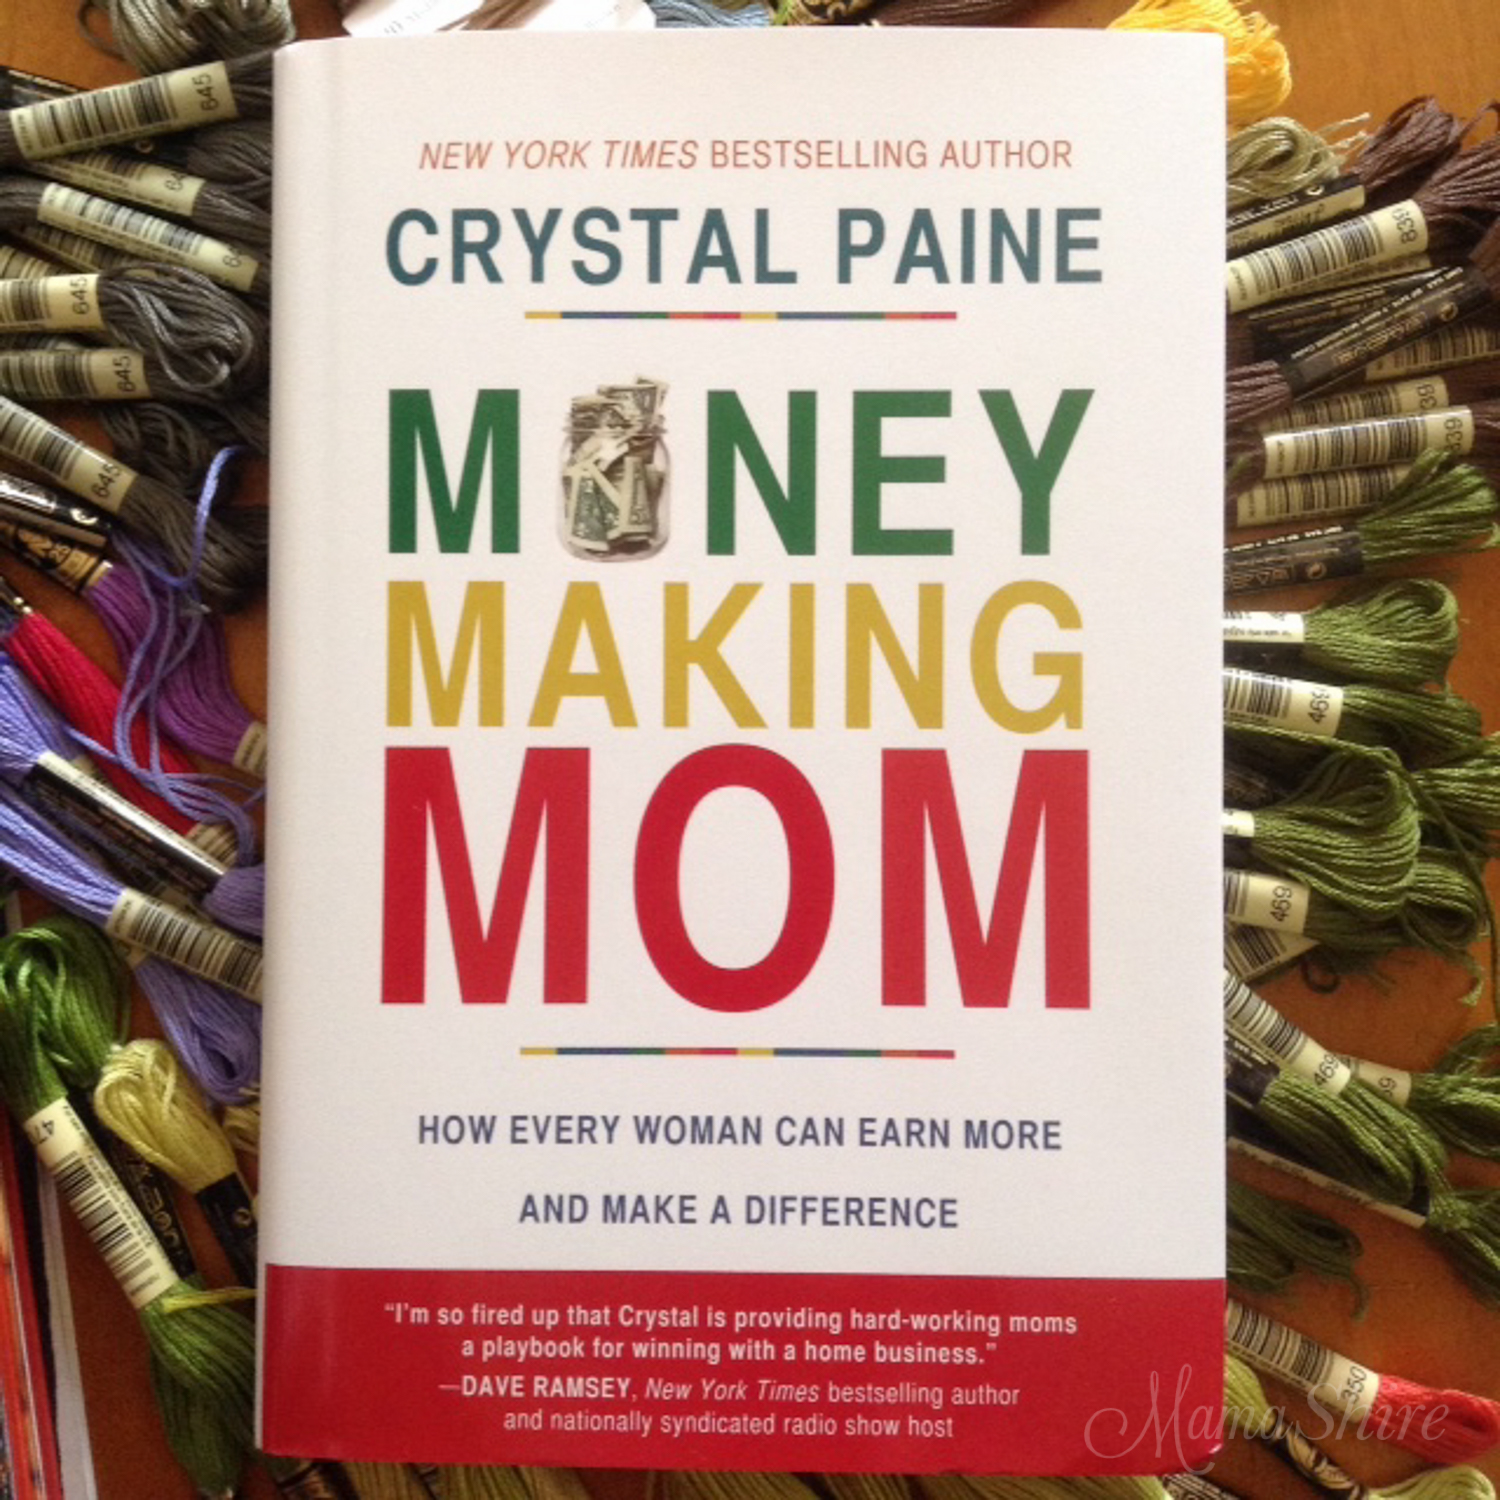 Money Making Mom - MamaShire.com